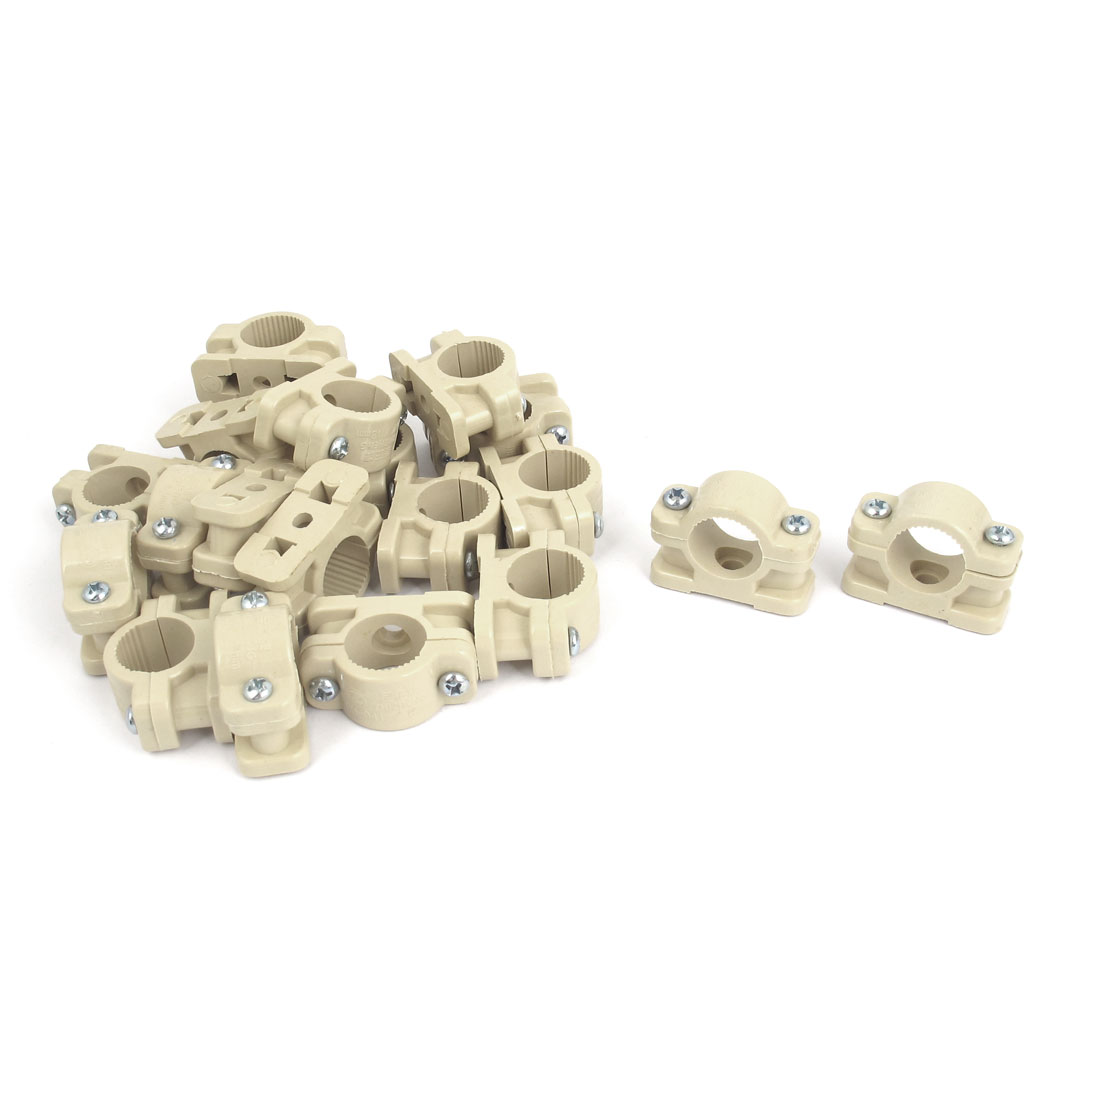 20 Pcs 18mm Diameter Water Supply Pipe Clamps Screw Clips Fitting Beige